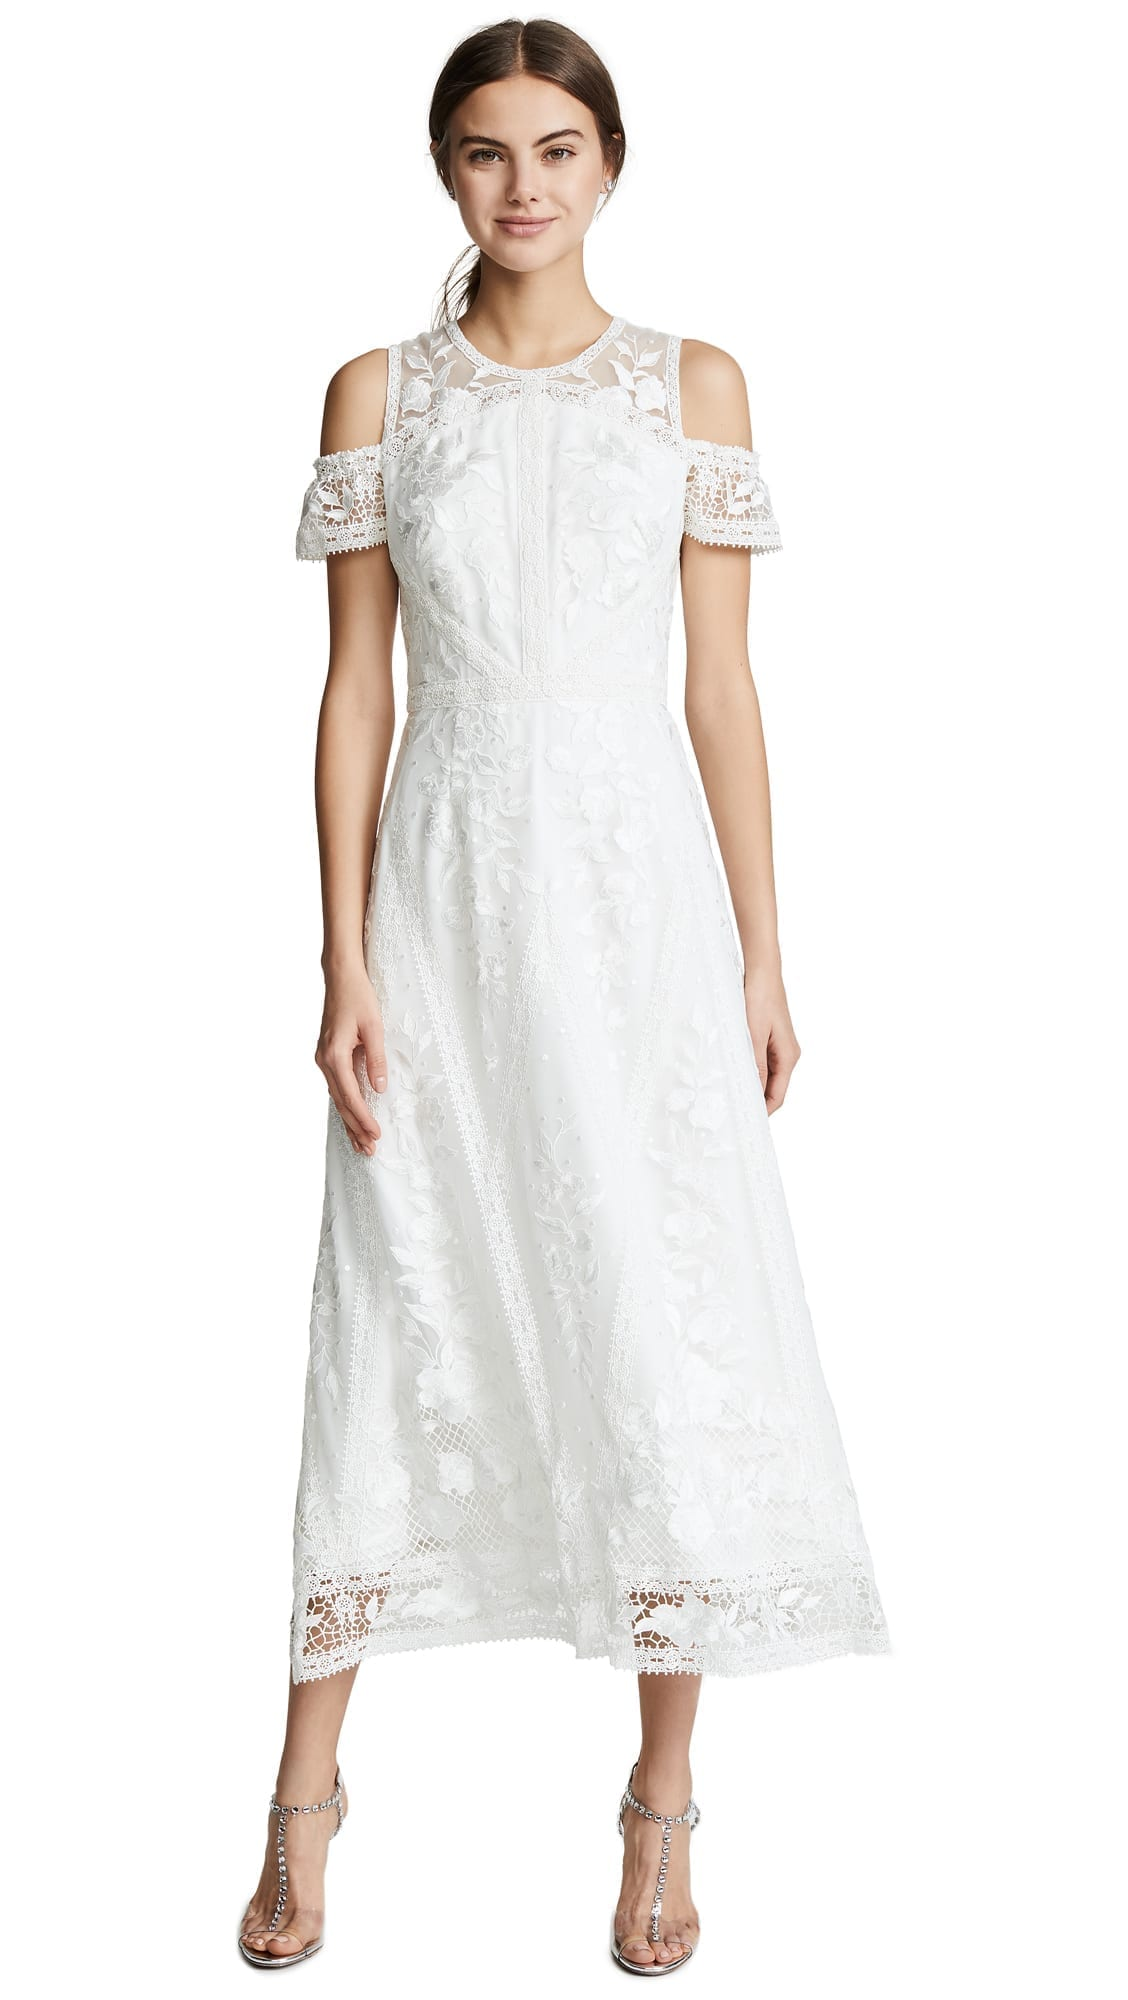 MARCHESA NOTTE Cold Shoulder Lace Cocktail Ivory Dress